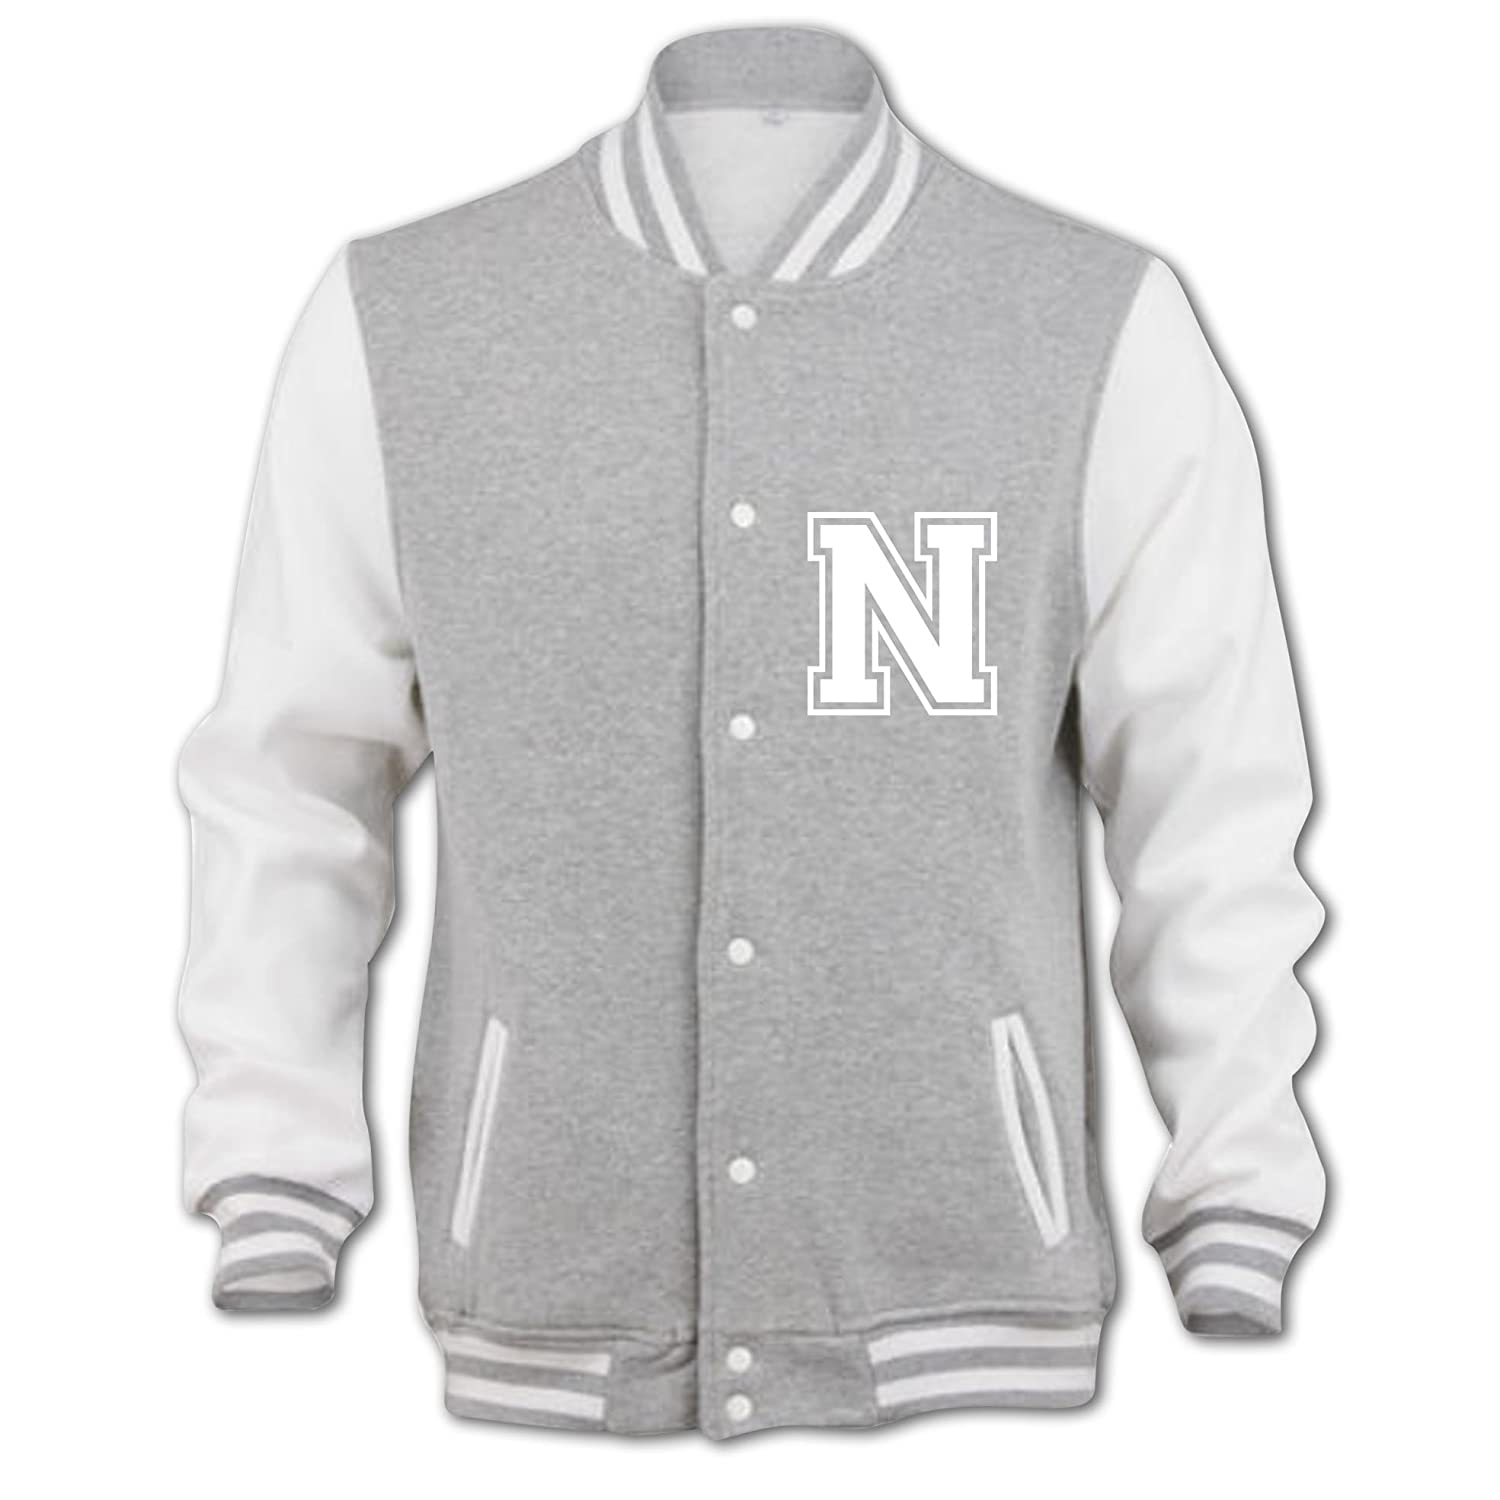 Bang Tidy Clothing Unisex-Adult Niall Horan Fan Jacket XX-Large Grey 1146